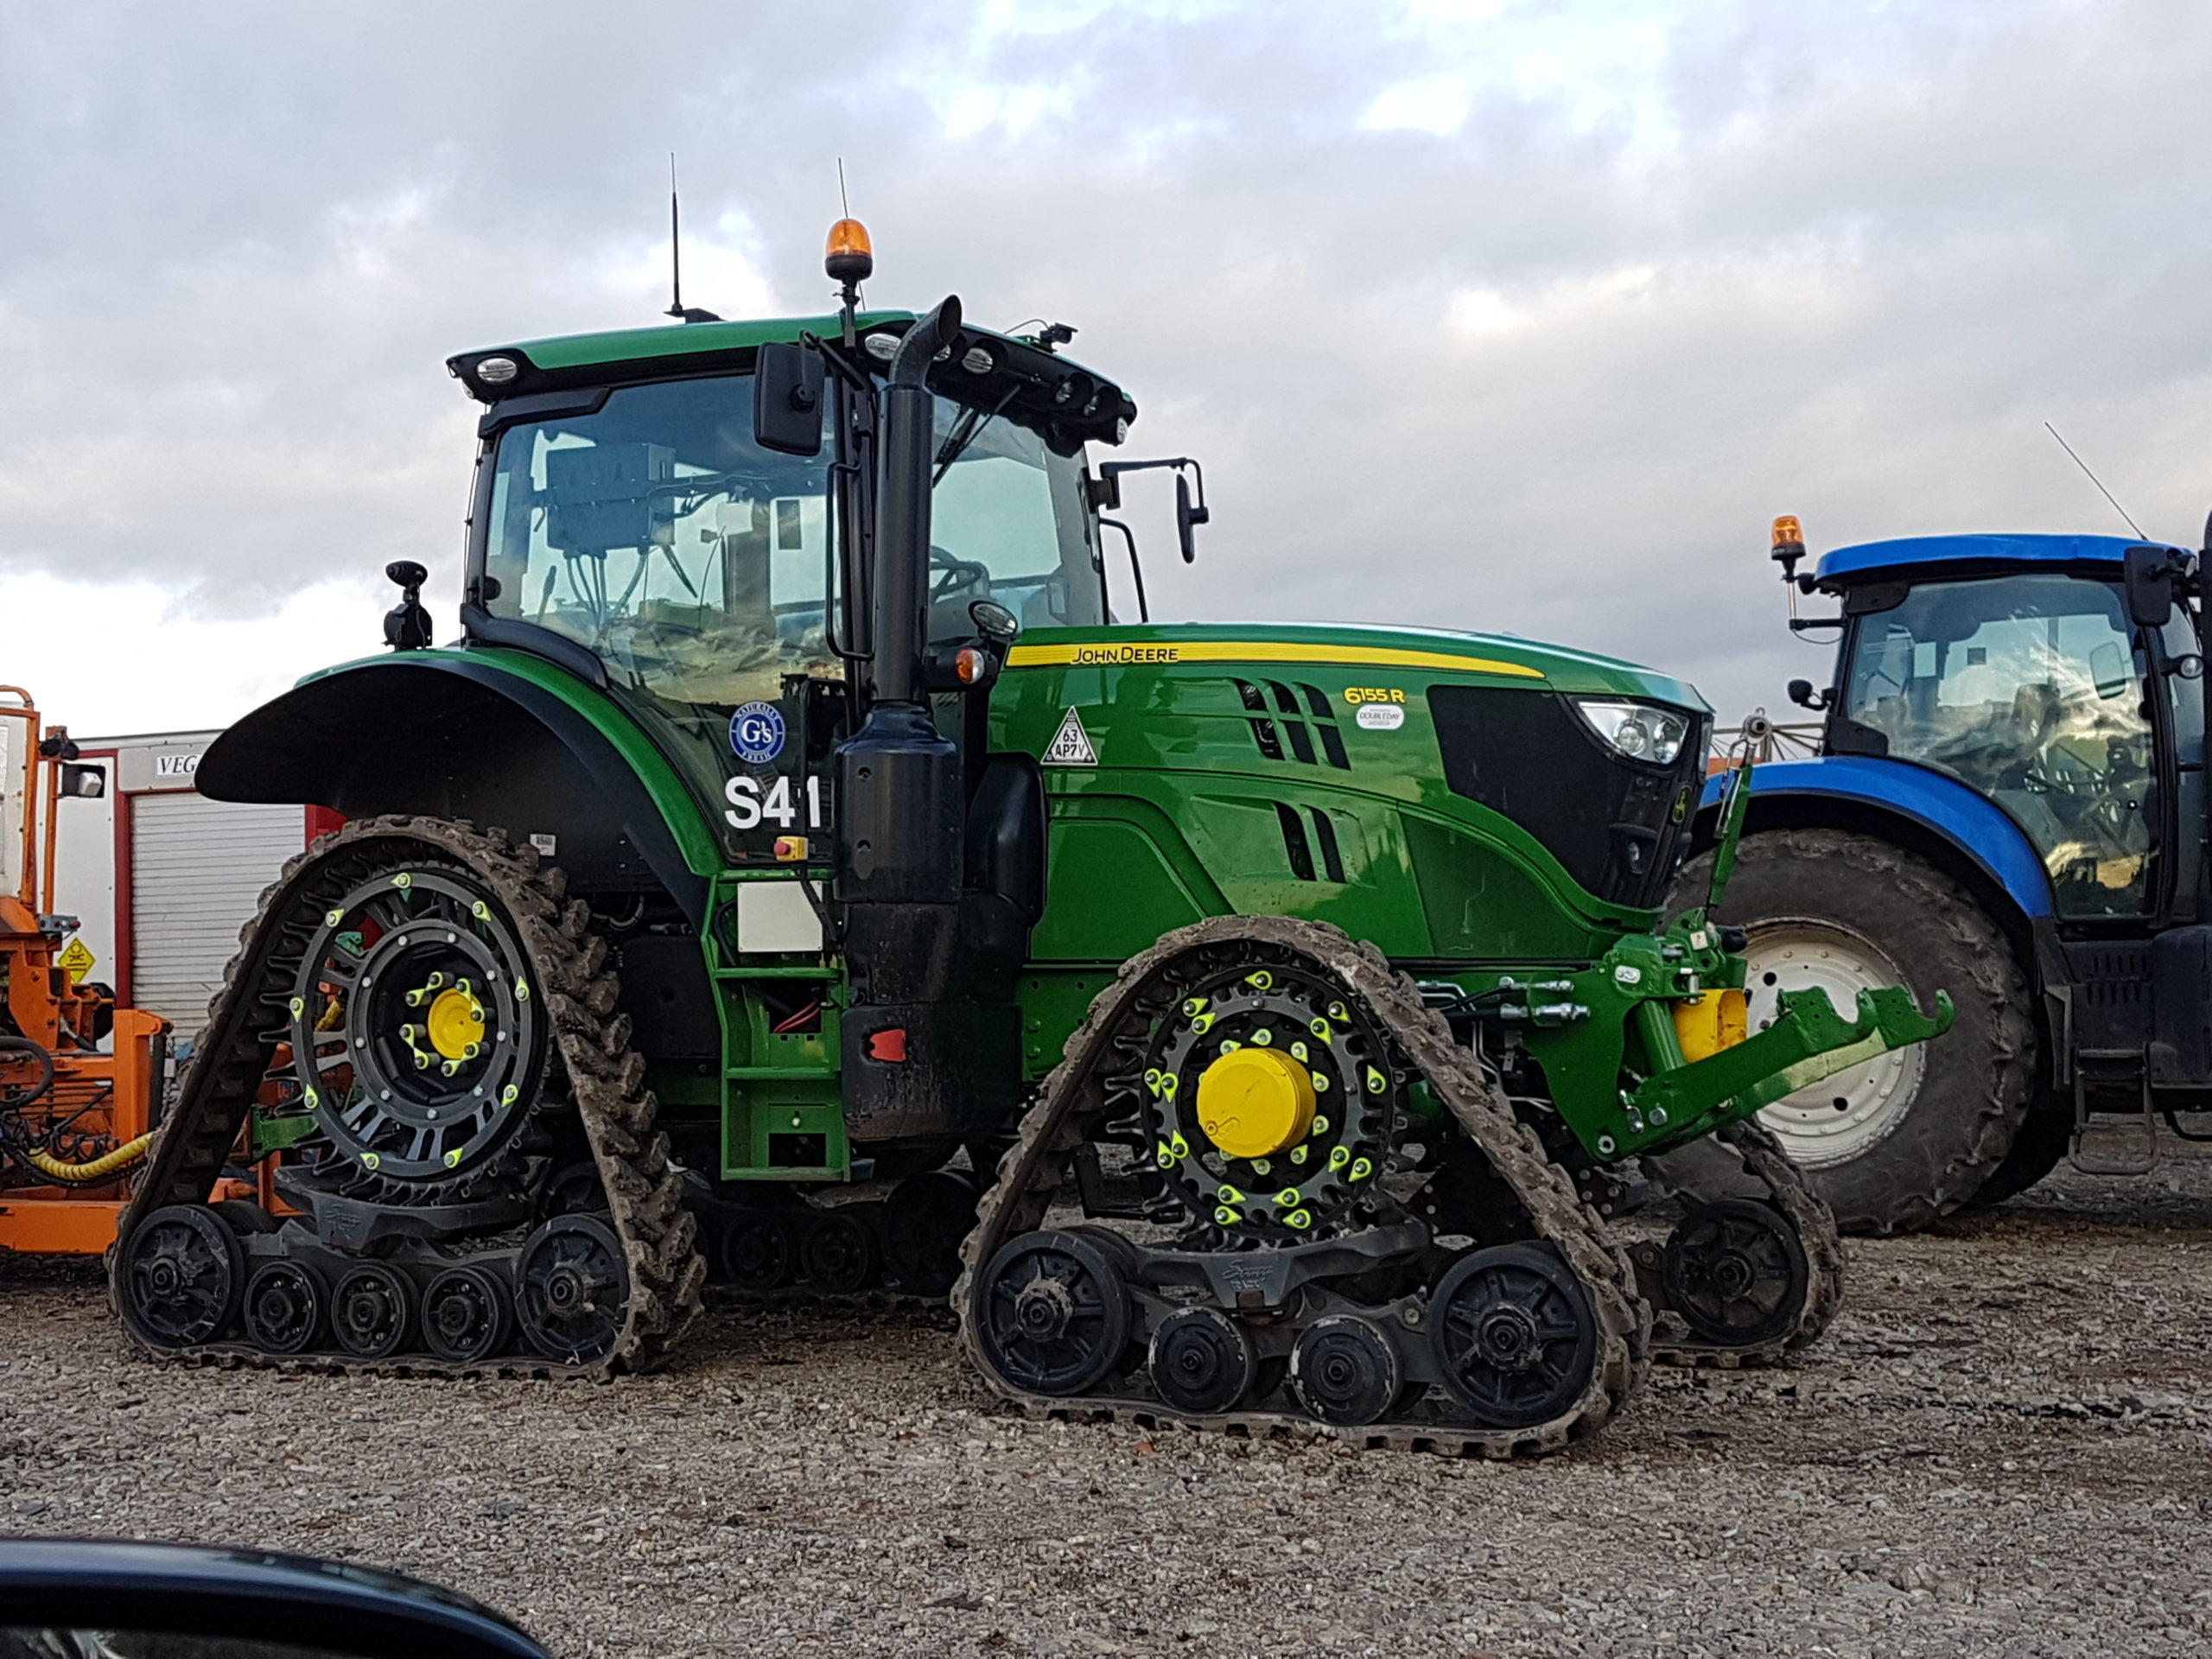 Soucy S Tech 612 tracks fitted to JD 6155R working in CAMBS